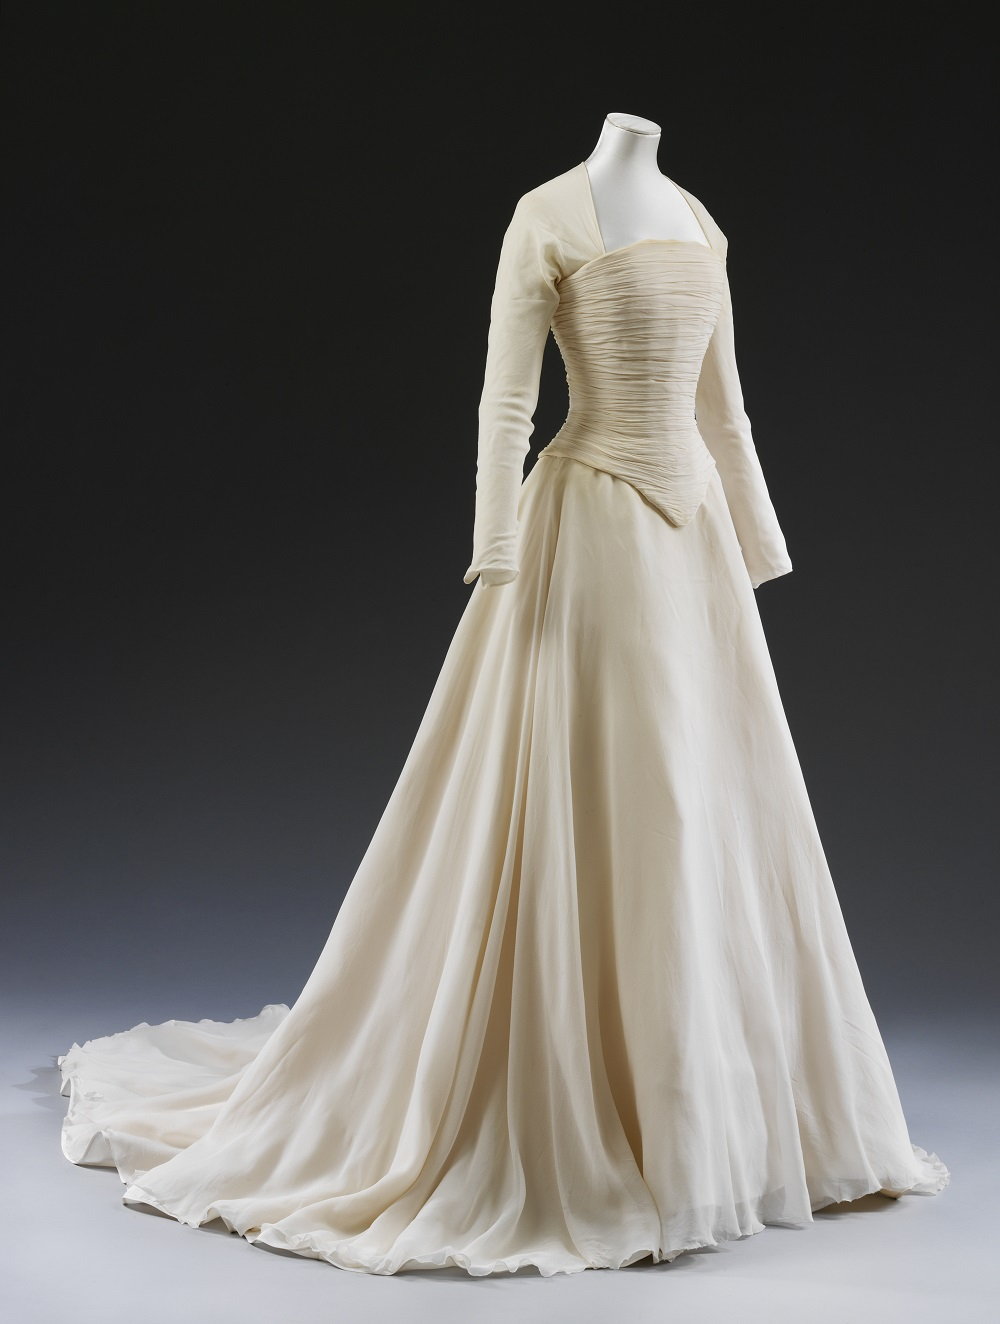 Romantic Country Wedding Dresses – Part 1 recommend